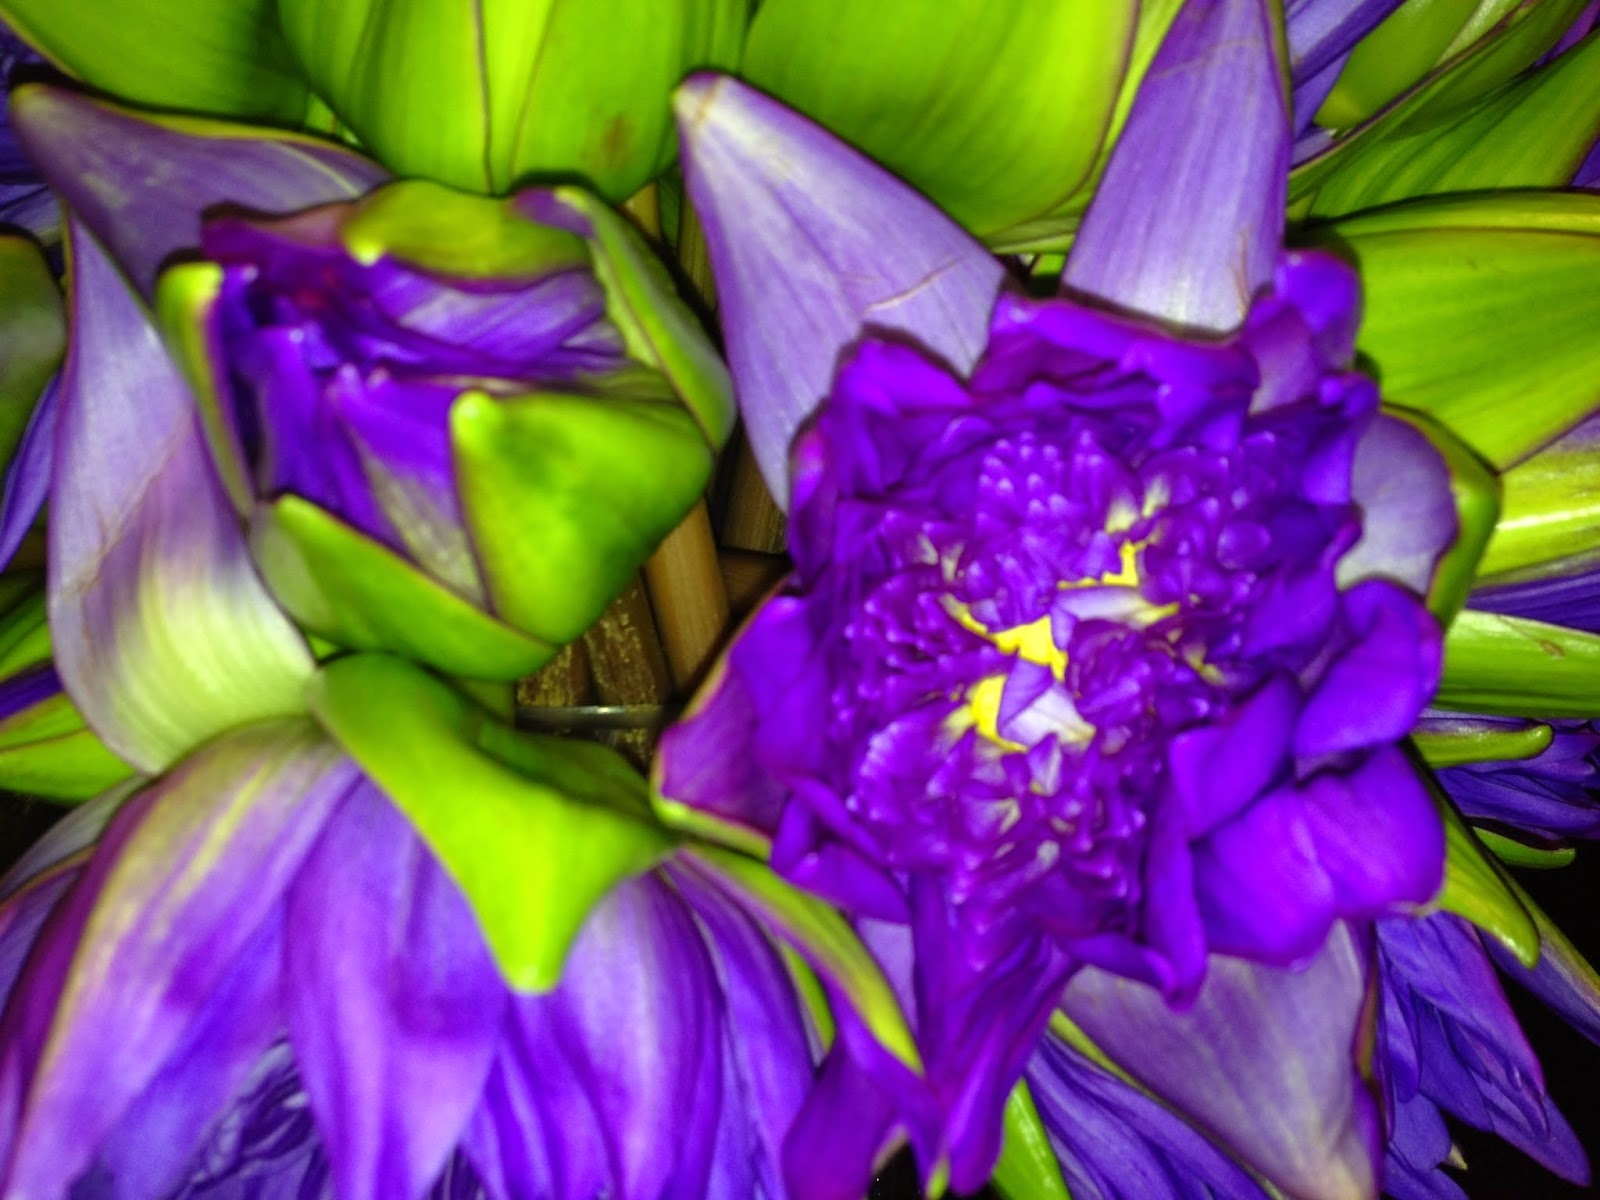 Beautiful purple lotus flowers from bangkok self sagacity the third meaning refers to faithfulness those who are working to rise above the muddy waters will need to be faithful followers mightylinksfo